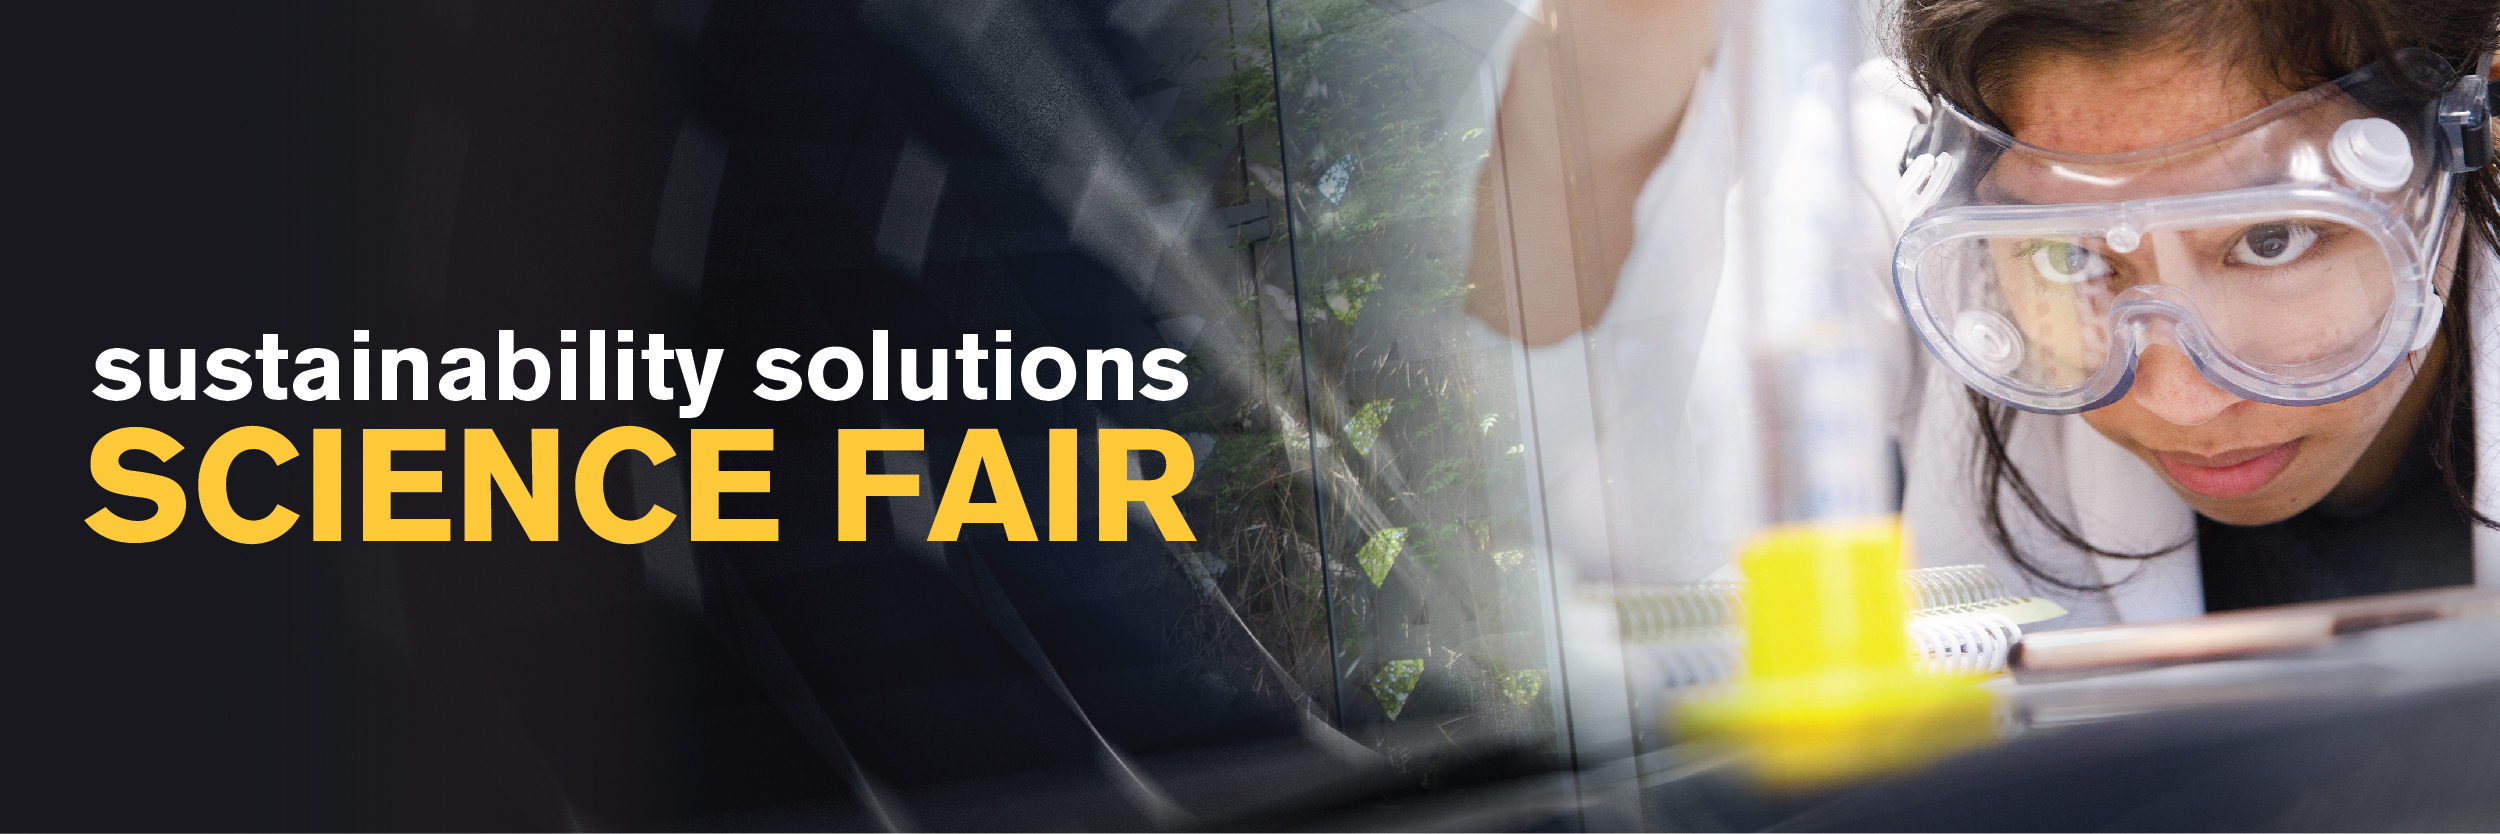 Sustainability Solutions Science Fair